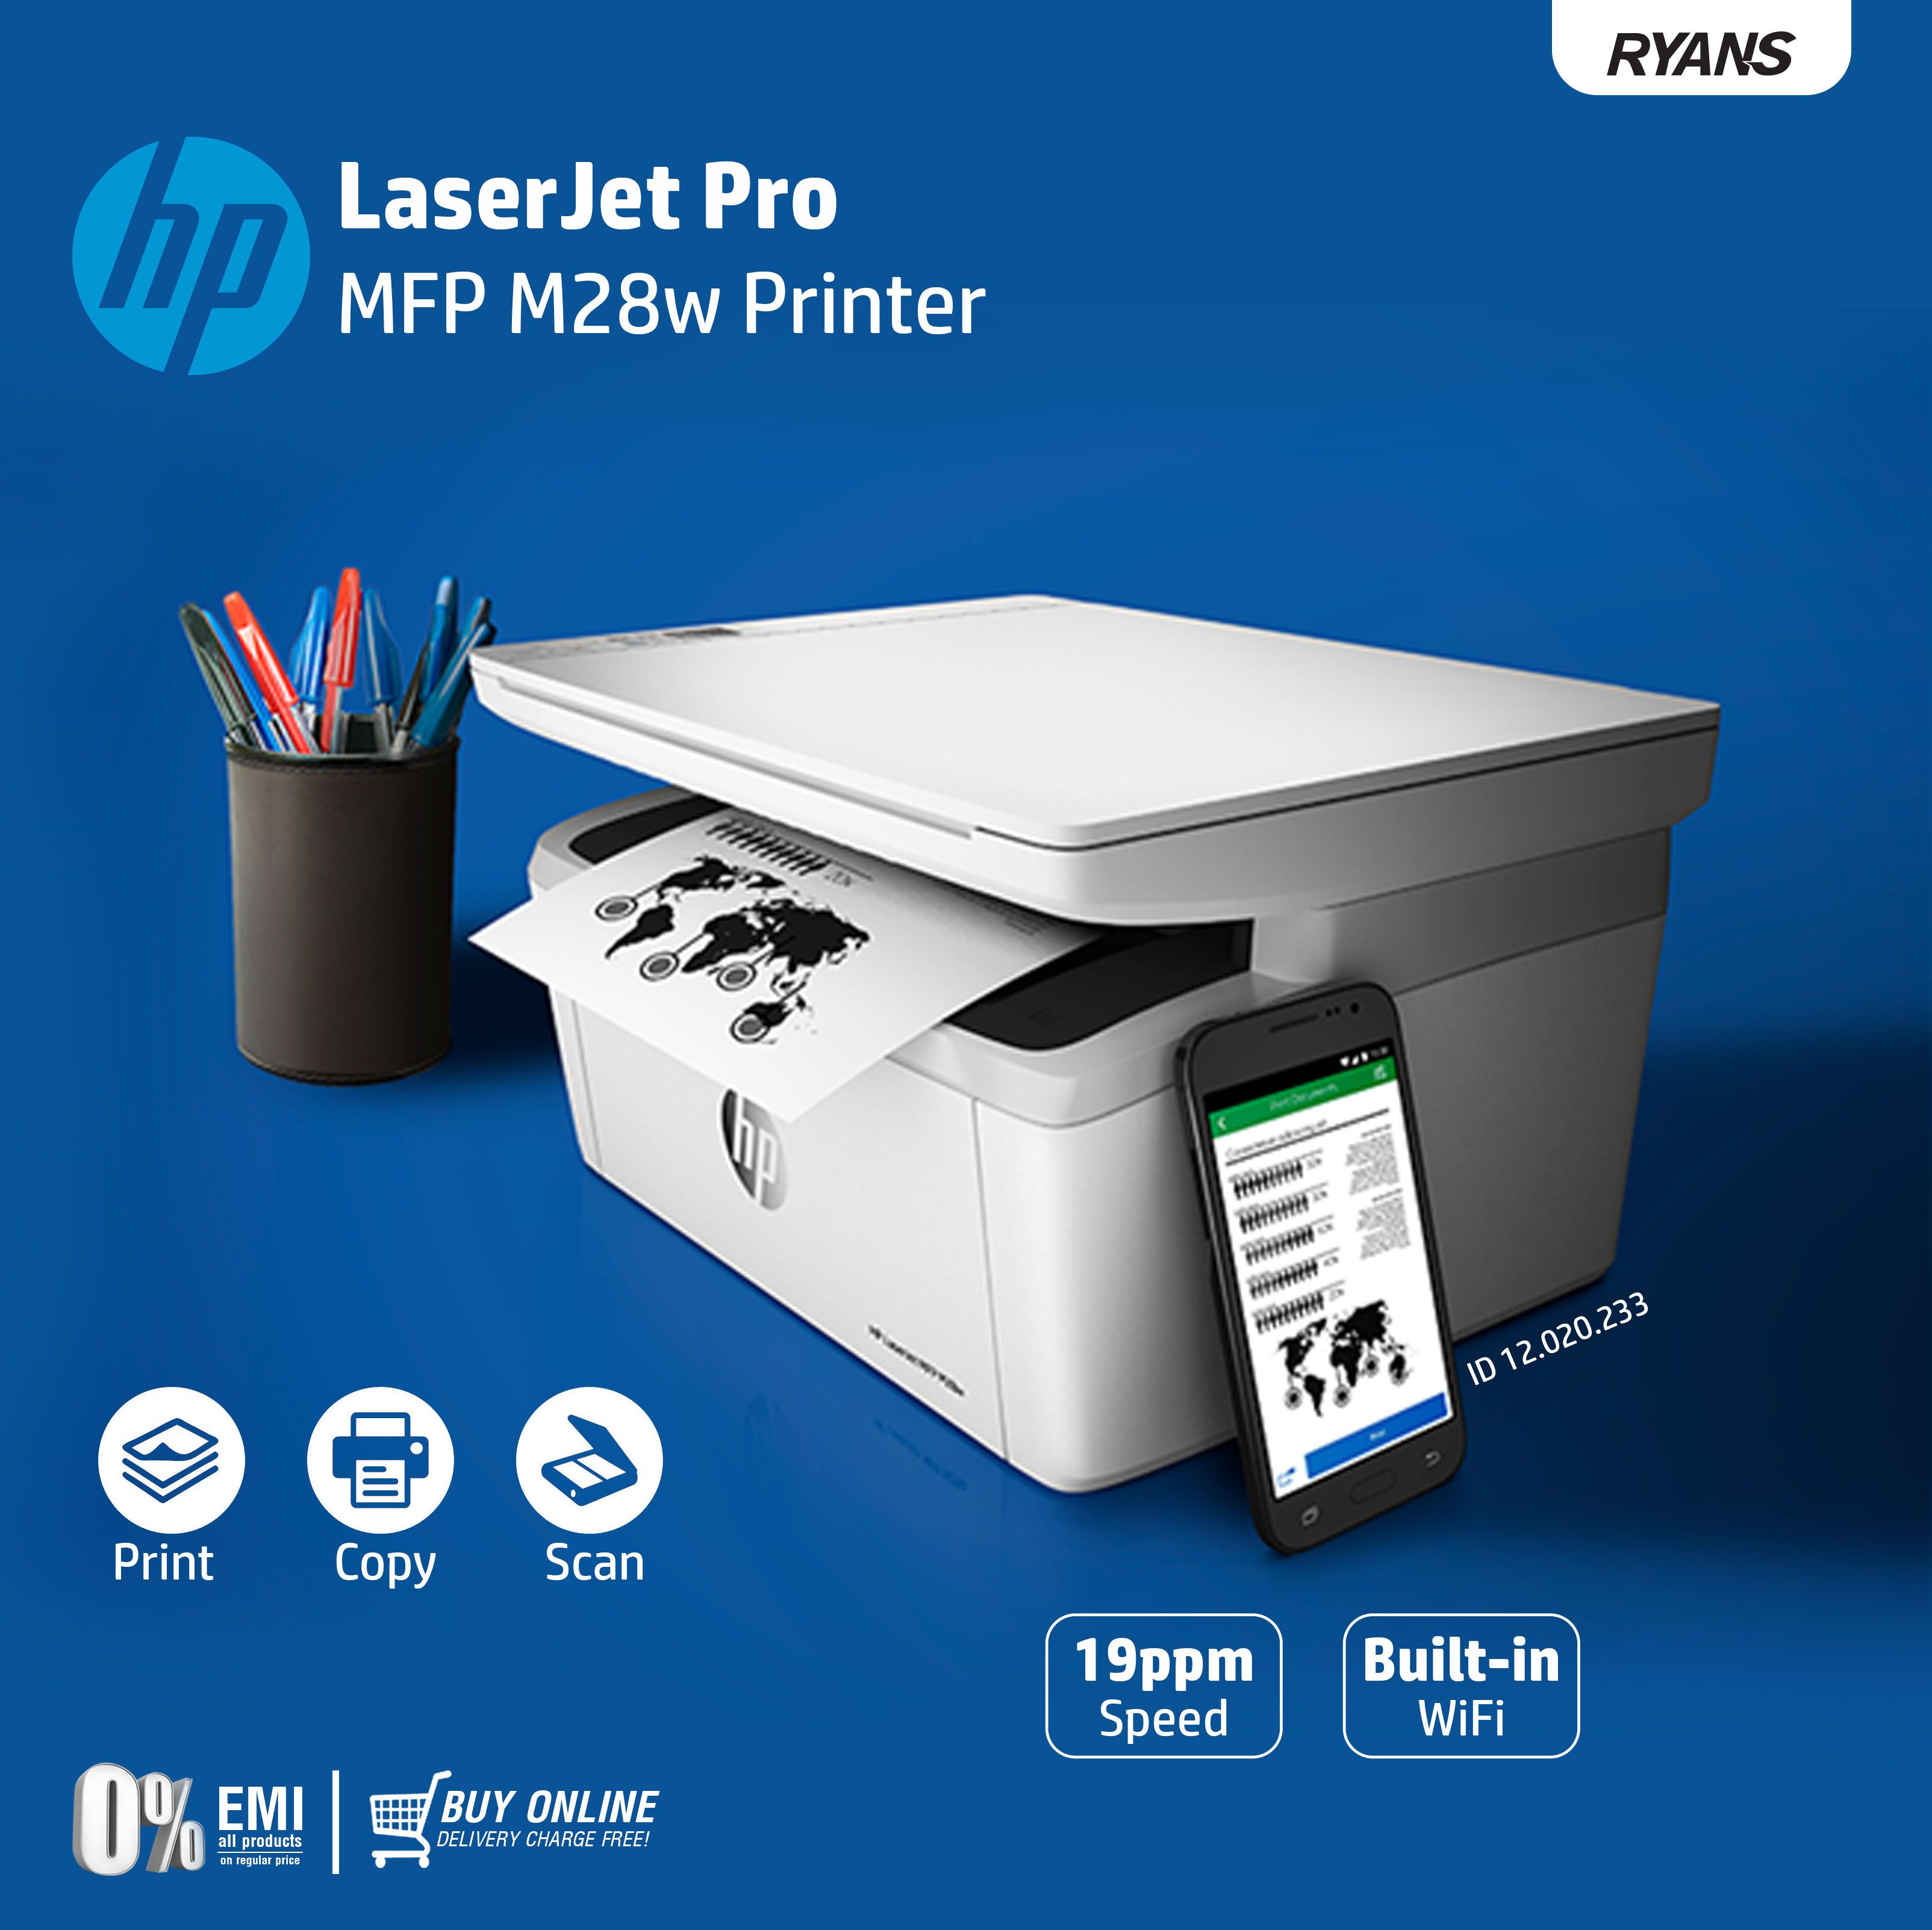 Hp Laserjet Pro Printer Printer Mobile Print Printer Price